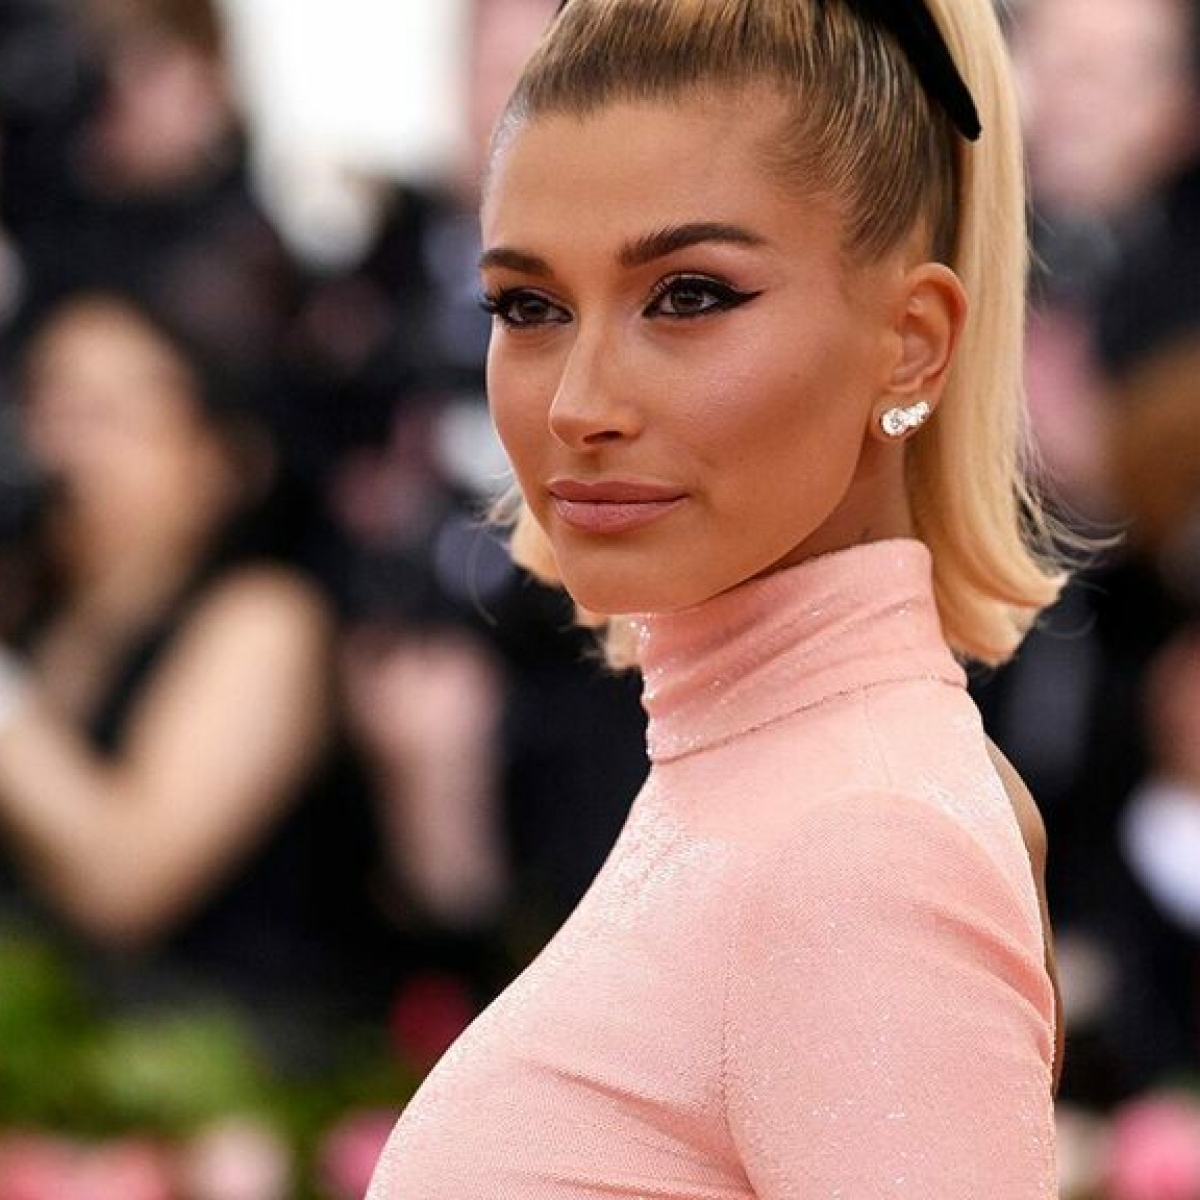 Hailey Baldwin opens up about her past, says she felt 'legitimately tortured' by shame